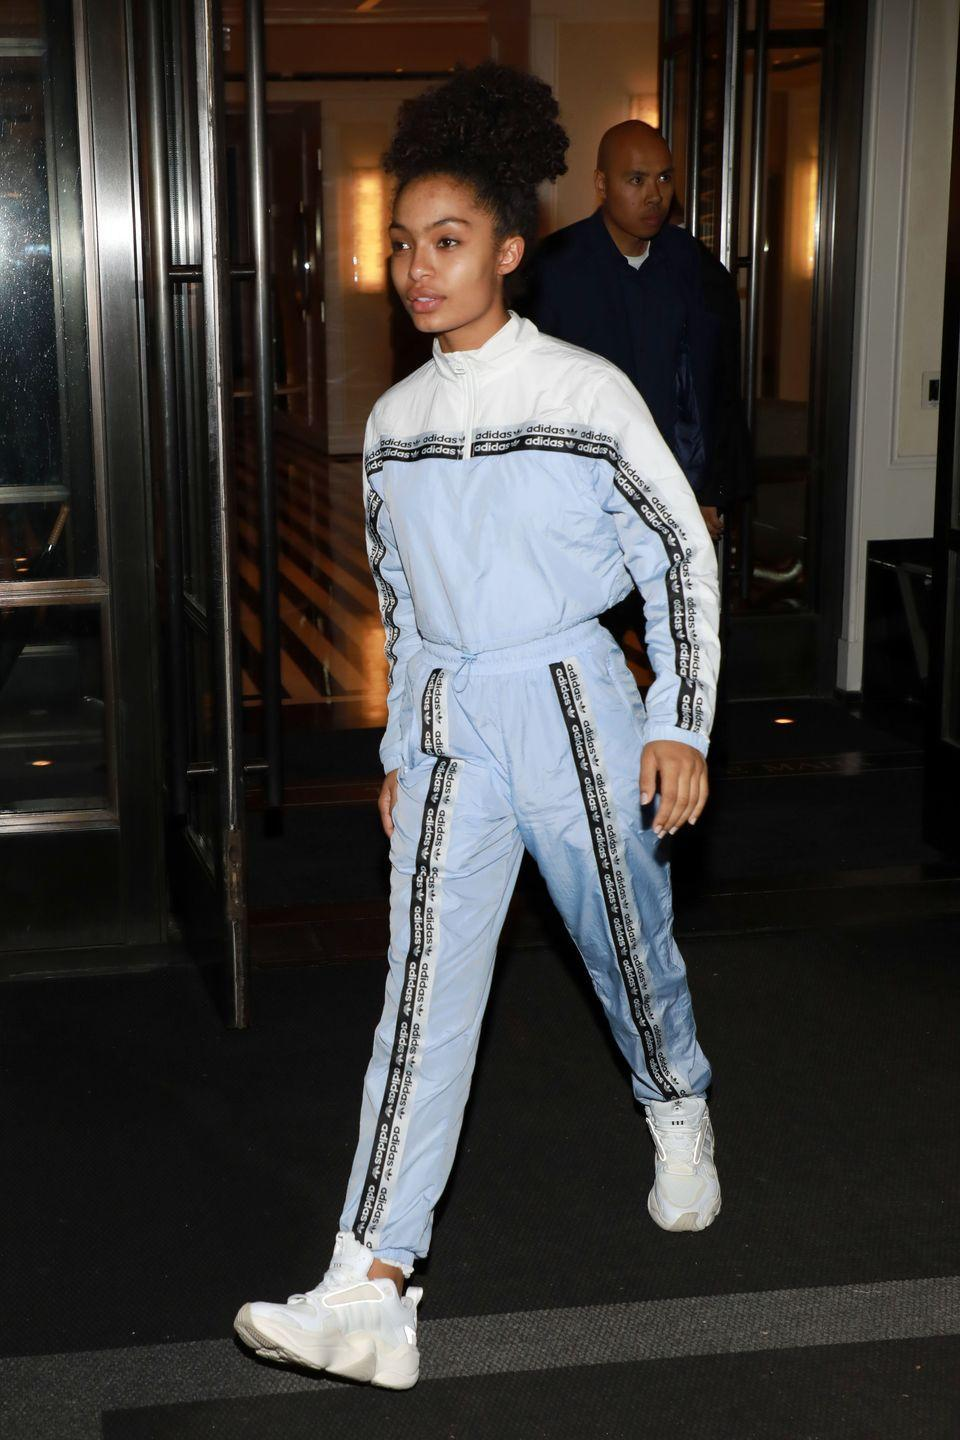 """<p>For some reason, a matching tracksuit just feels more put-together than regular sweatpants. A sleek top knot is the perfect <a href=""""https://www.seventeen.com/beauty/celeb-beauty/advice/g460/back-to-school-beauty-inspiration/"""" rel=""""nofollow noopener"""" target=""""_blank"""" data-ylk=""""slk:back to school hairstyle"""" class=""""link rapid-noclick-resp"""">back to school hairstyle</a> to go along with it. </p>"""